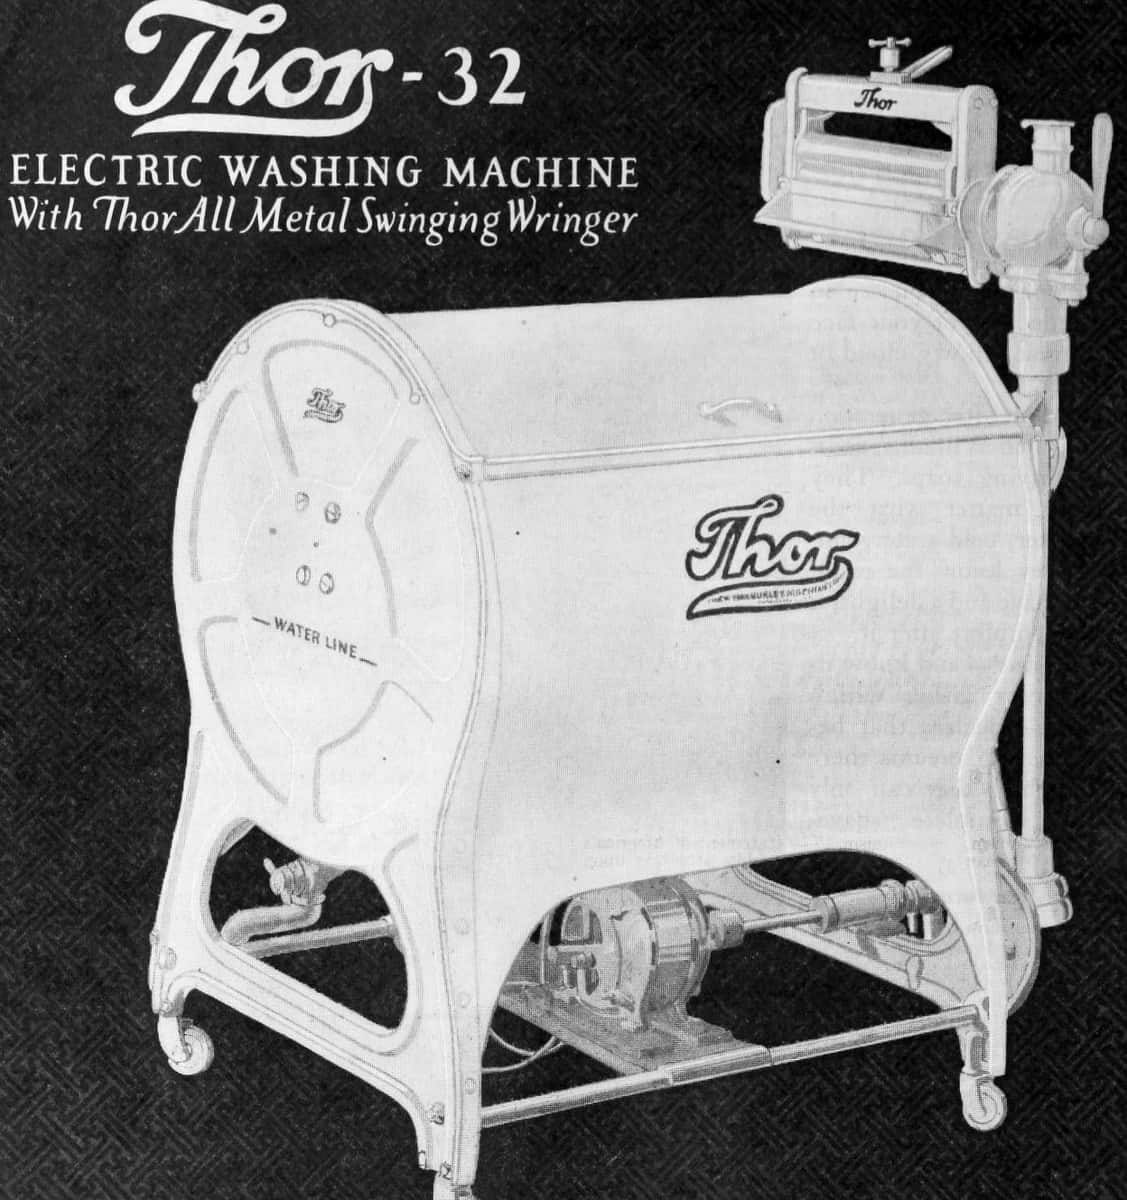 "Part of the advert poster for the Thor-32, an ""electric washing machine with Thor All Metal Swining Wringer"". The washing machine is pictured, with some cables and a motor visible at the bottom."